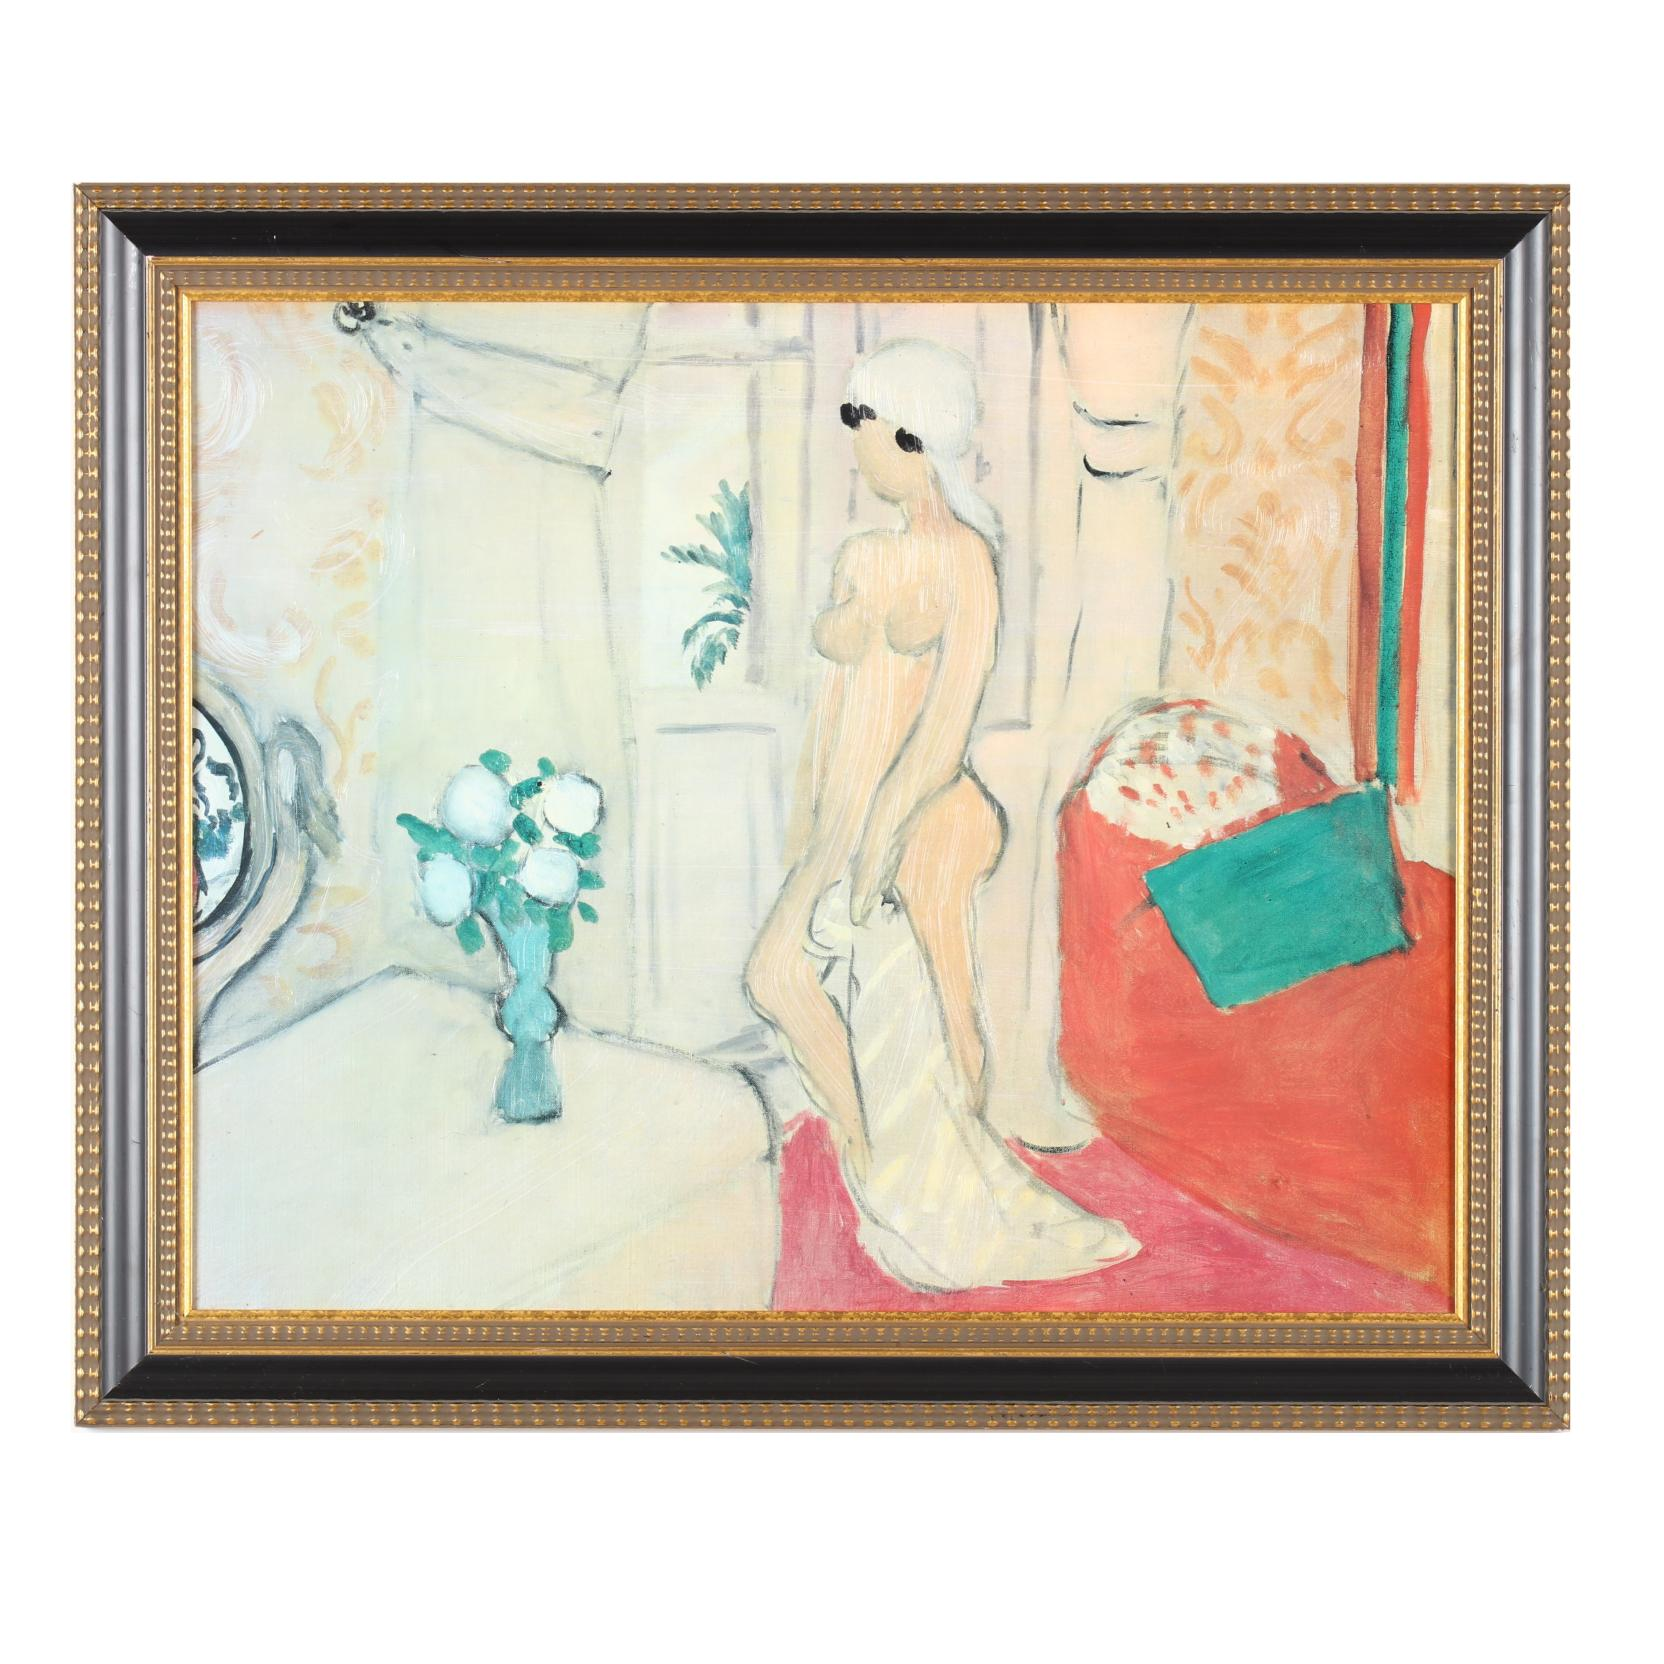 decorative-print-after-matisse-young-girl-with-the-vase-of-flowers-or-pink-nude